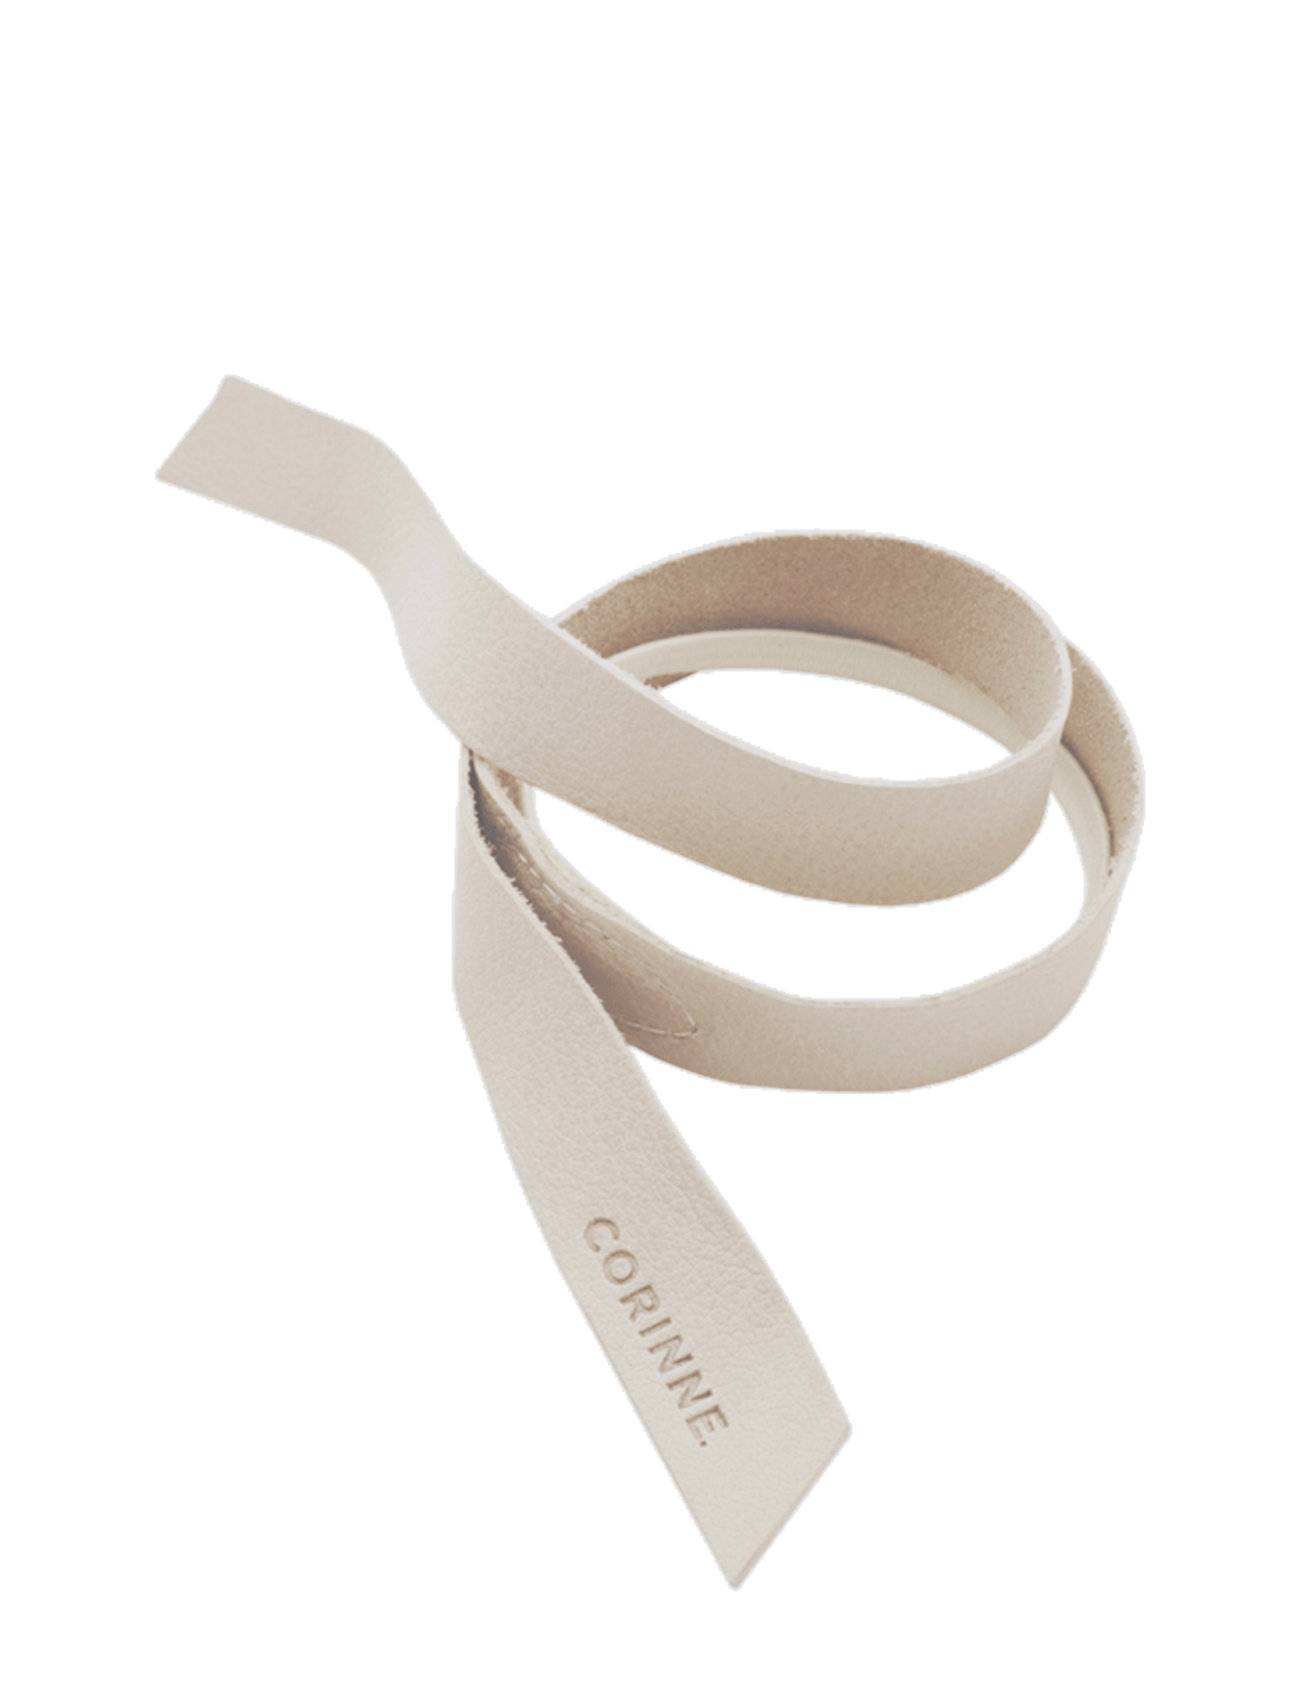 Image of Corinne Leather Band Short Layer Accessories Hair Hair Accessories Beige Corinne